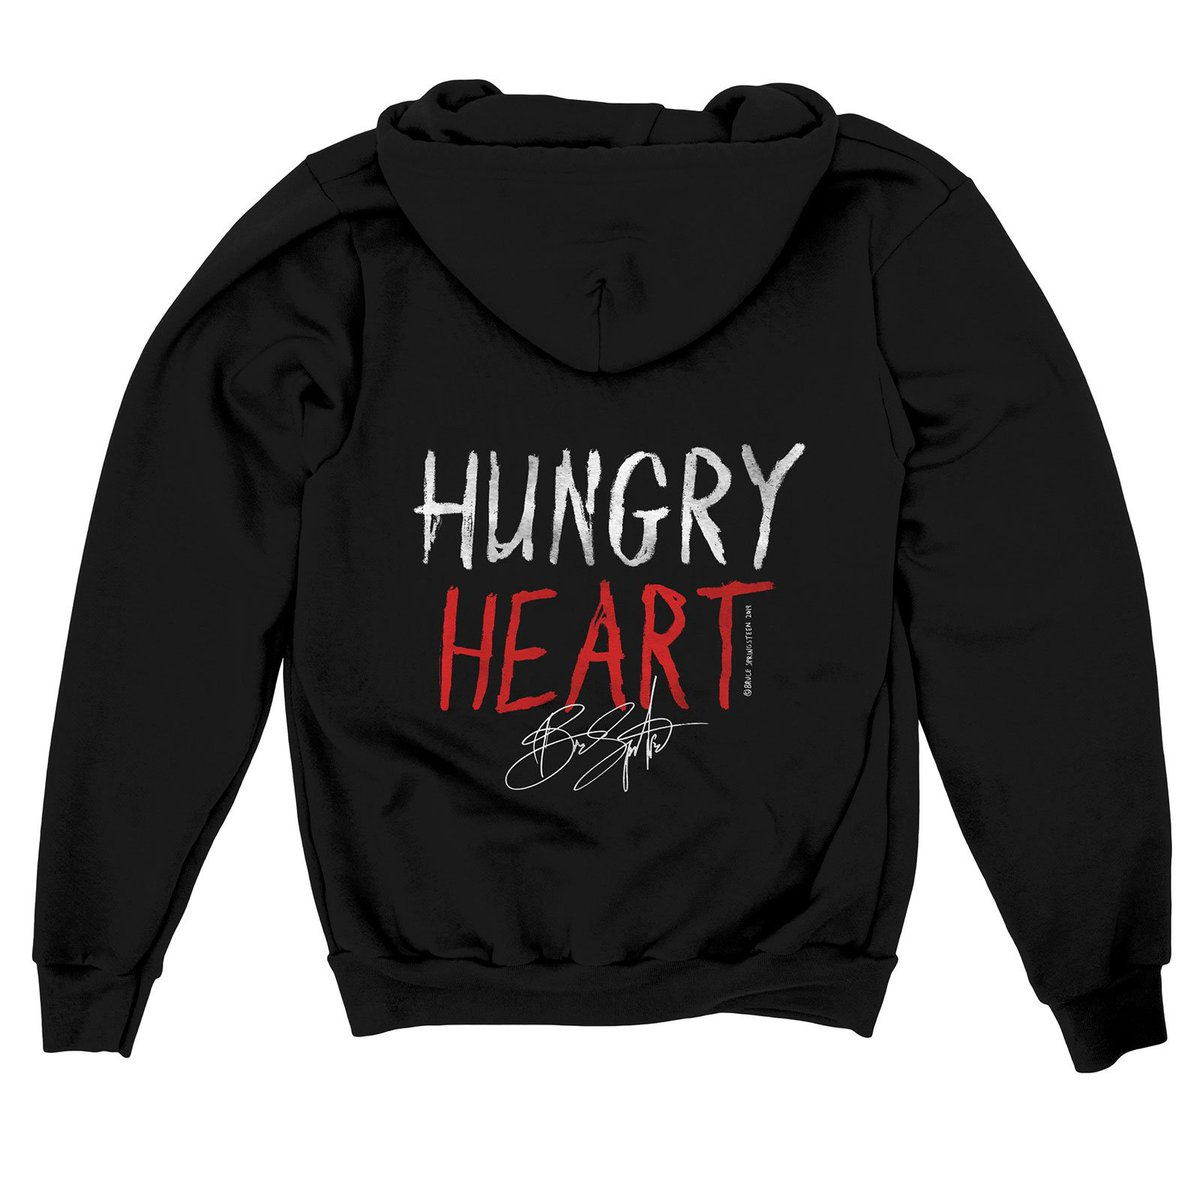 "Together, we can do our part to end hunger for good. Support @whyhunger and join the movement to fight for everyone's right to nutritious food. Donate to receive limited edition @springsteen ""Hungry Heart"" tees & hoodies! hungerthon.org #Hungerthon #Springsteen"